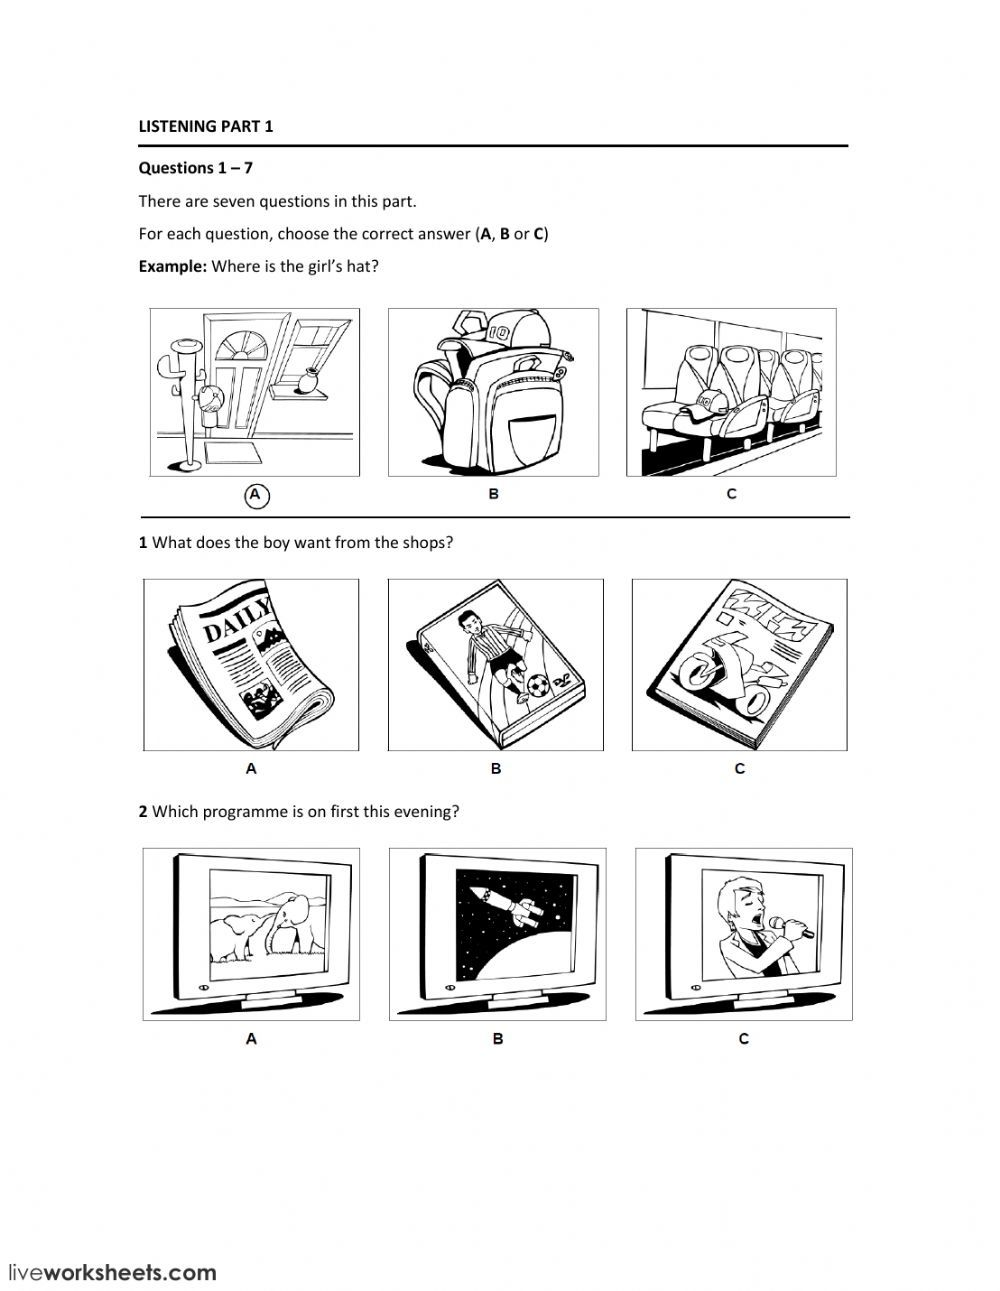 Listening Comprehension Interactive And Downloadable Worksheet You Can Do The Exercises Online Or Download The Worksheet As Pdf Dengan Gambar